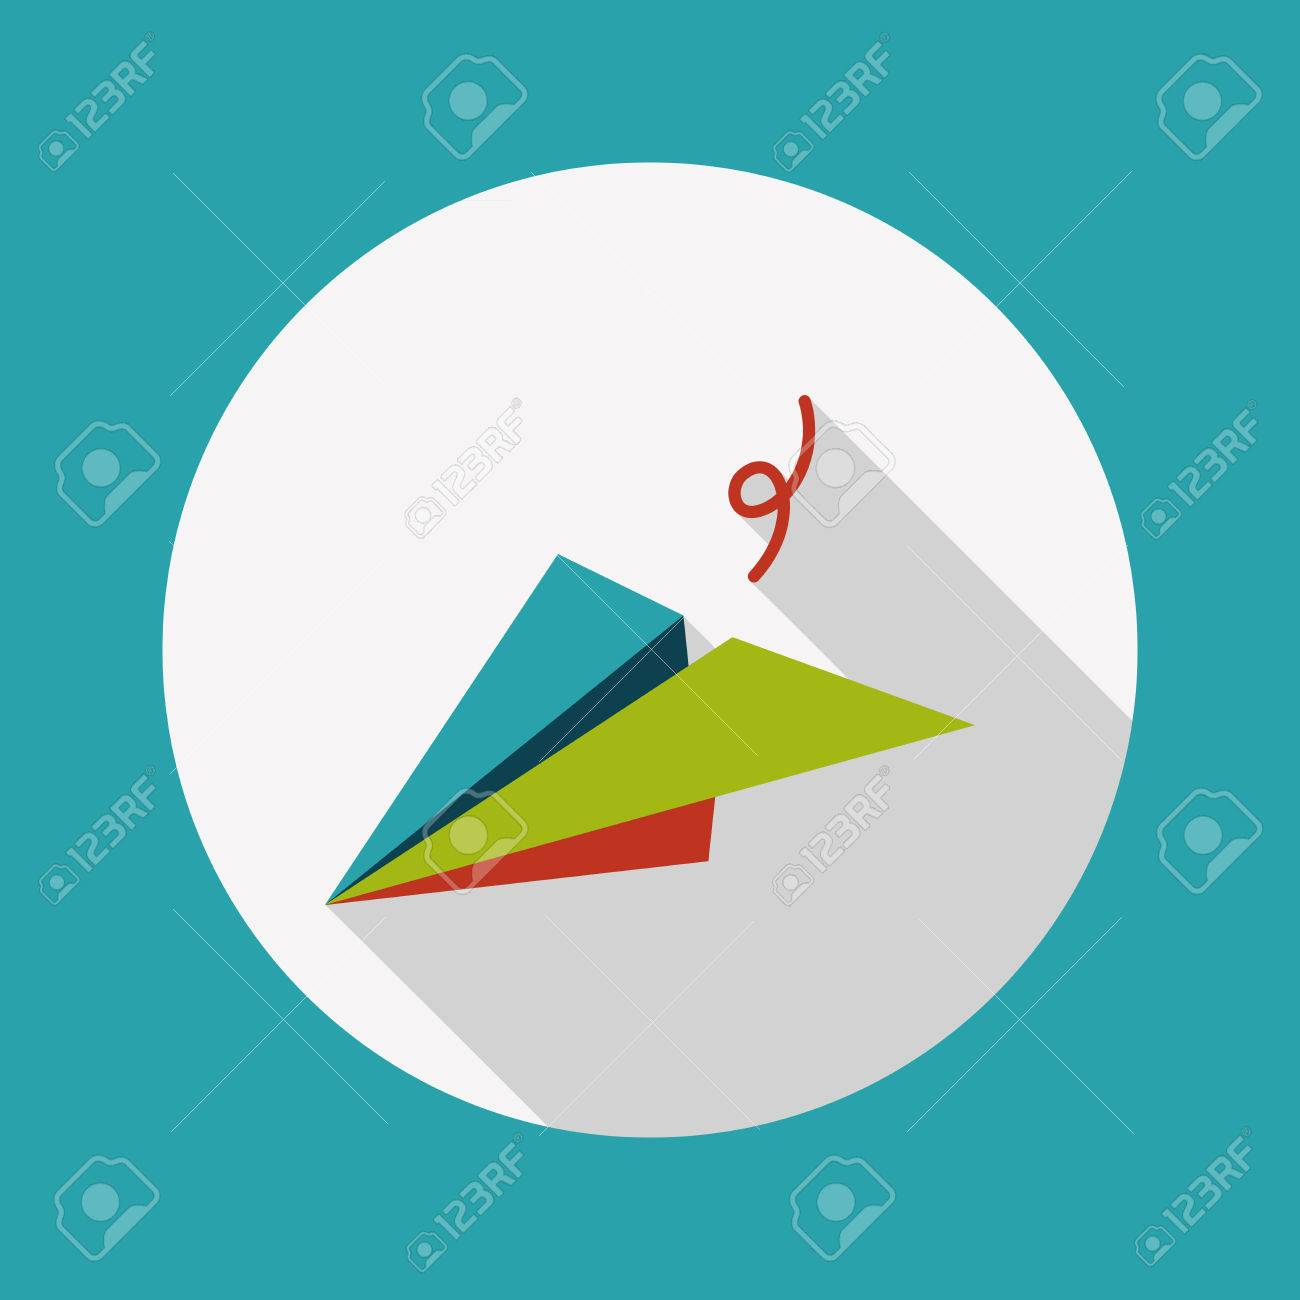 paper airplane flat icon with long shadow - 31113313